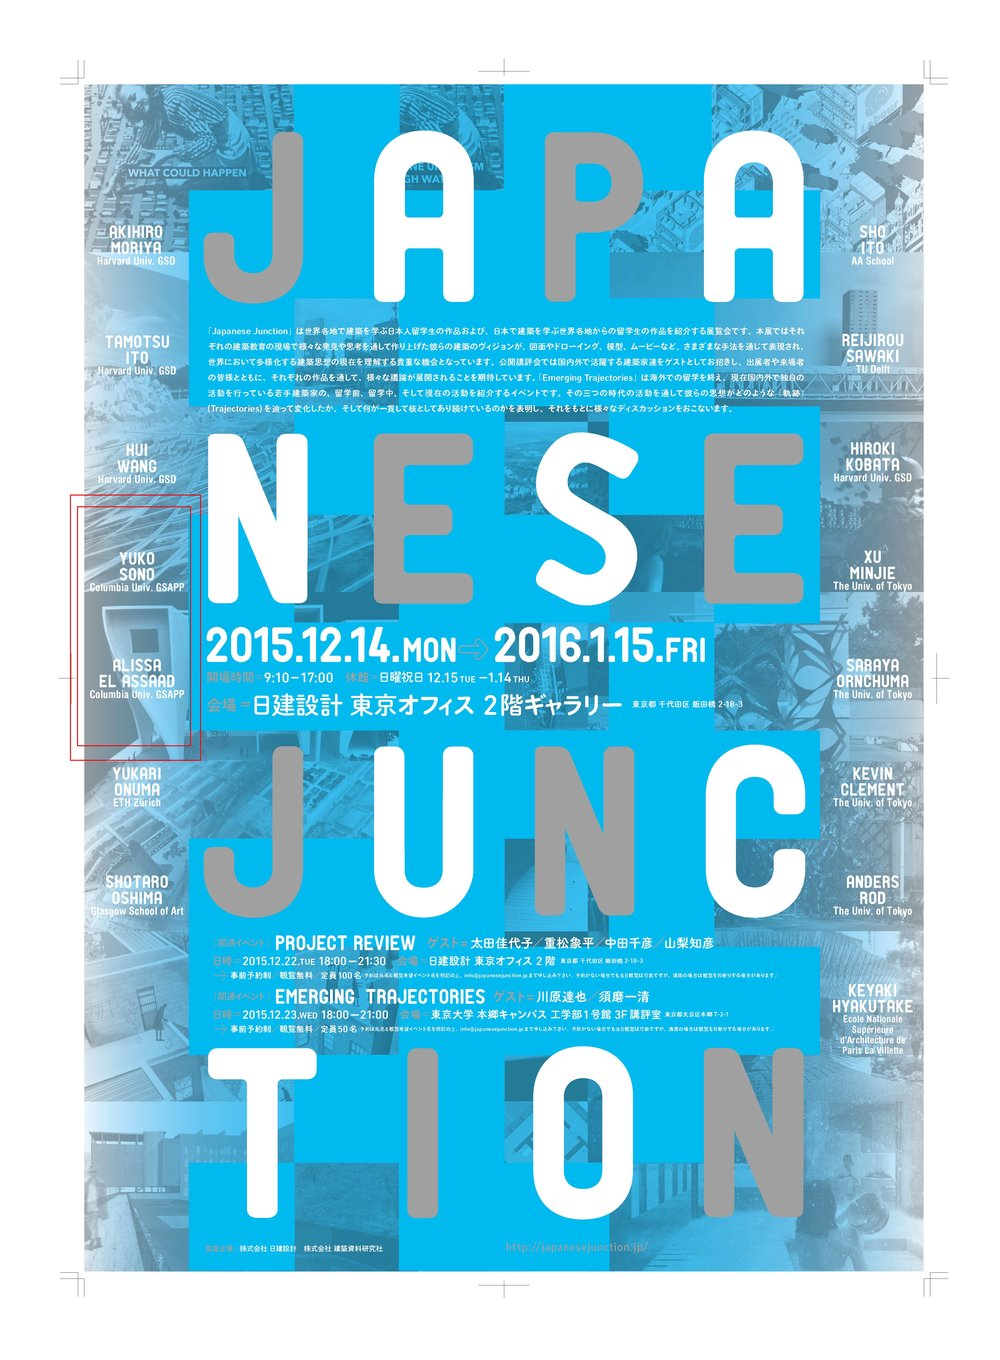 JapaneseJunction2015_2016_2_Page_1.jpg